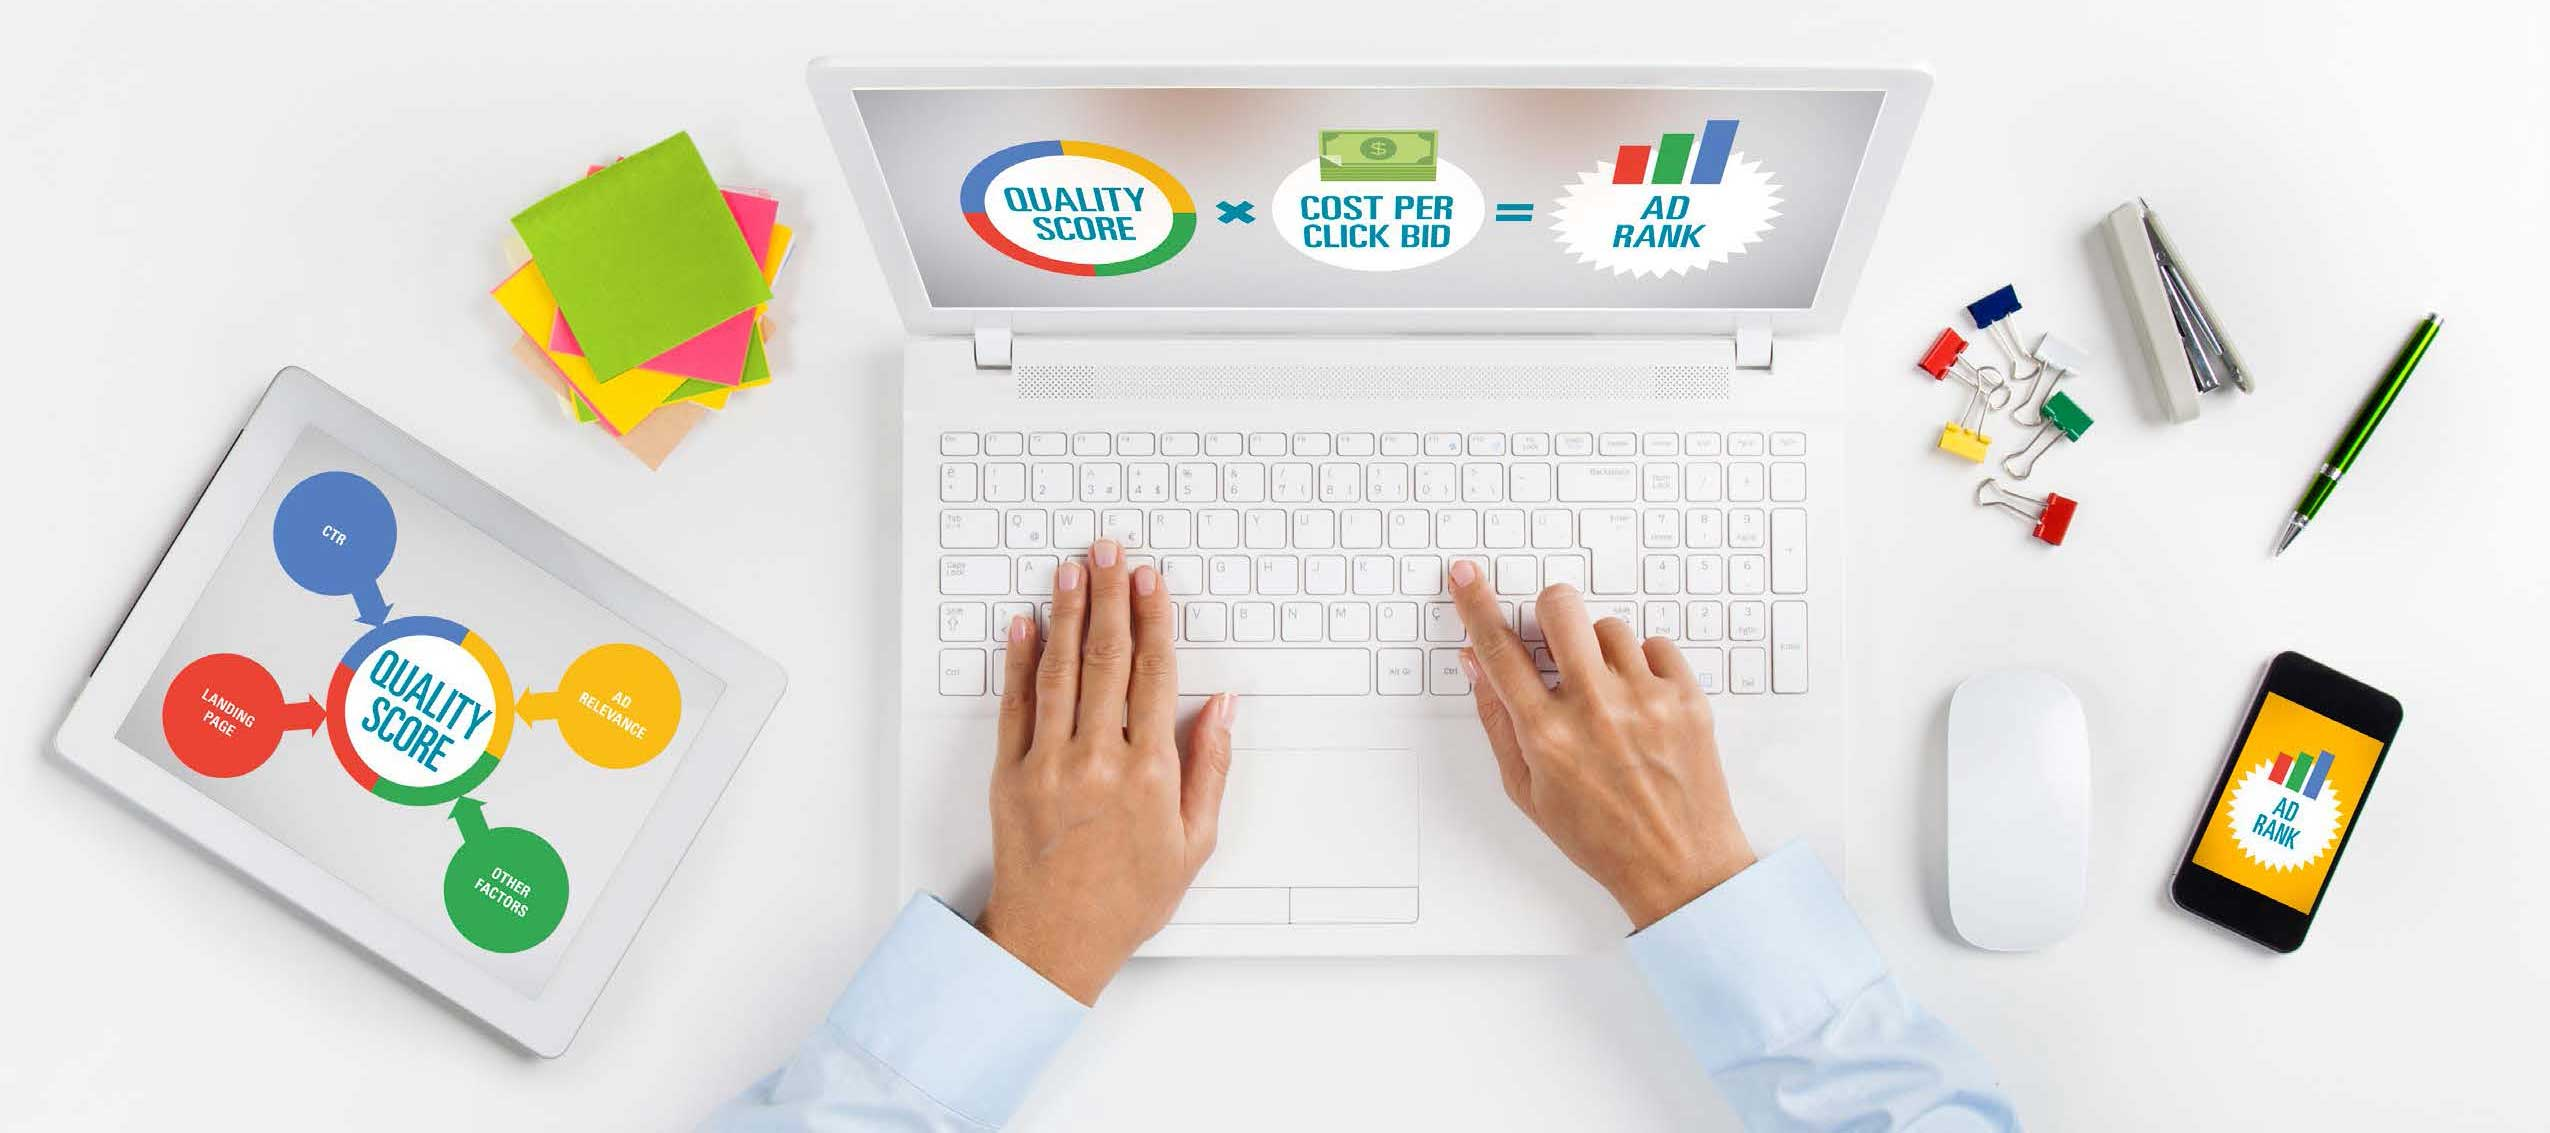 The Relevance of Google Ads in Online Marketing